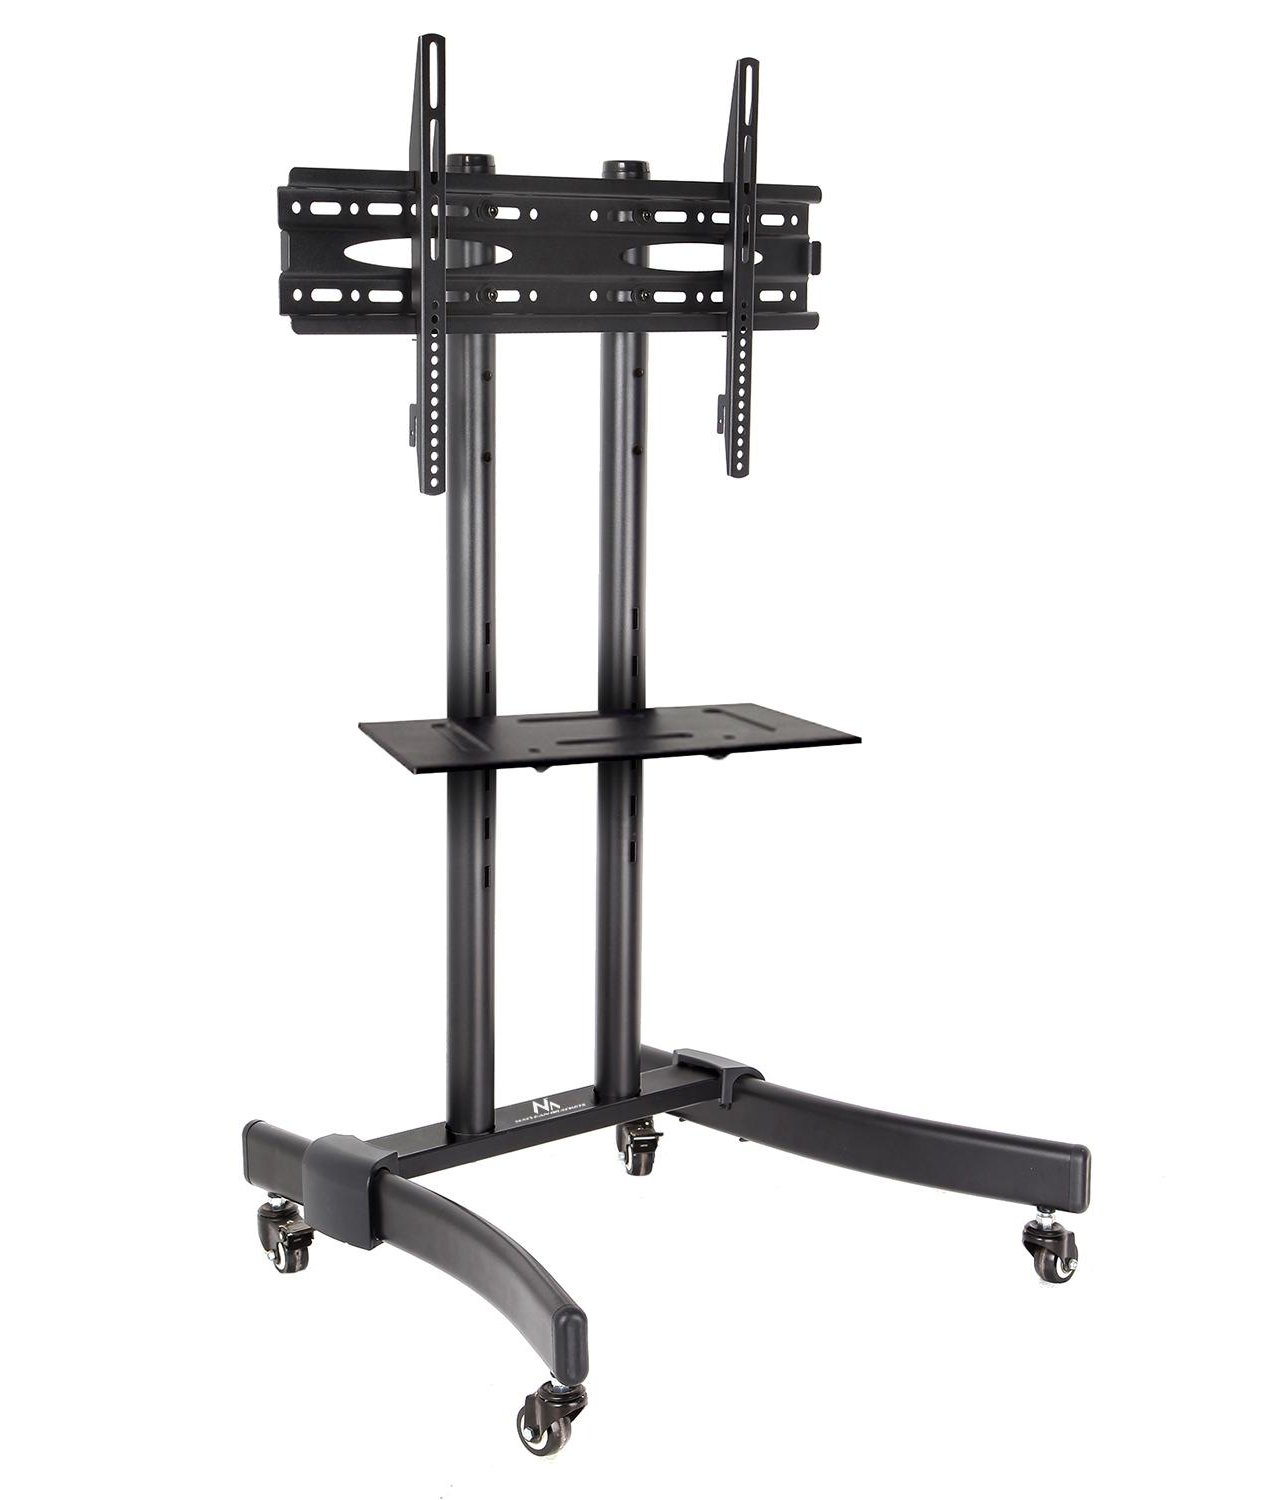 Maclean MC-739 (TV Trolley Stand) pilt 1